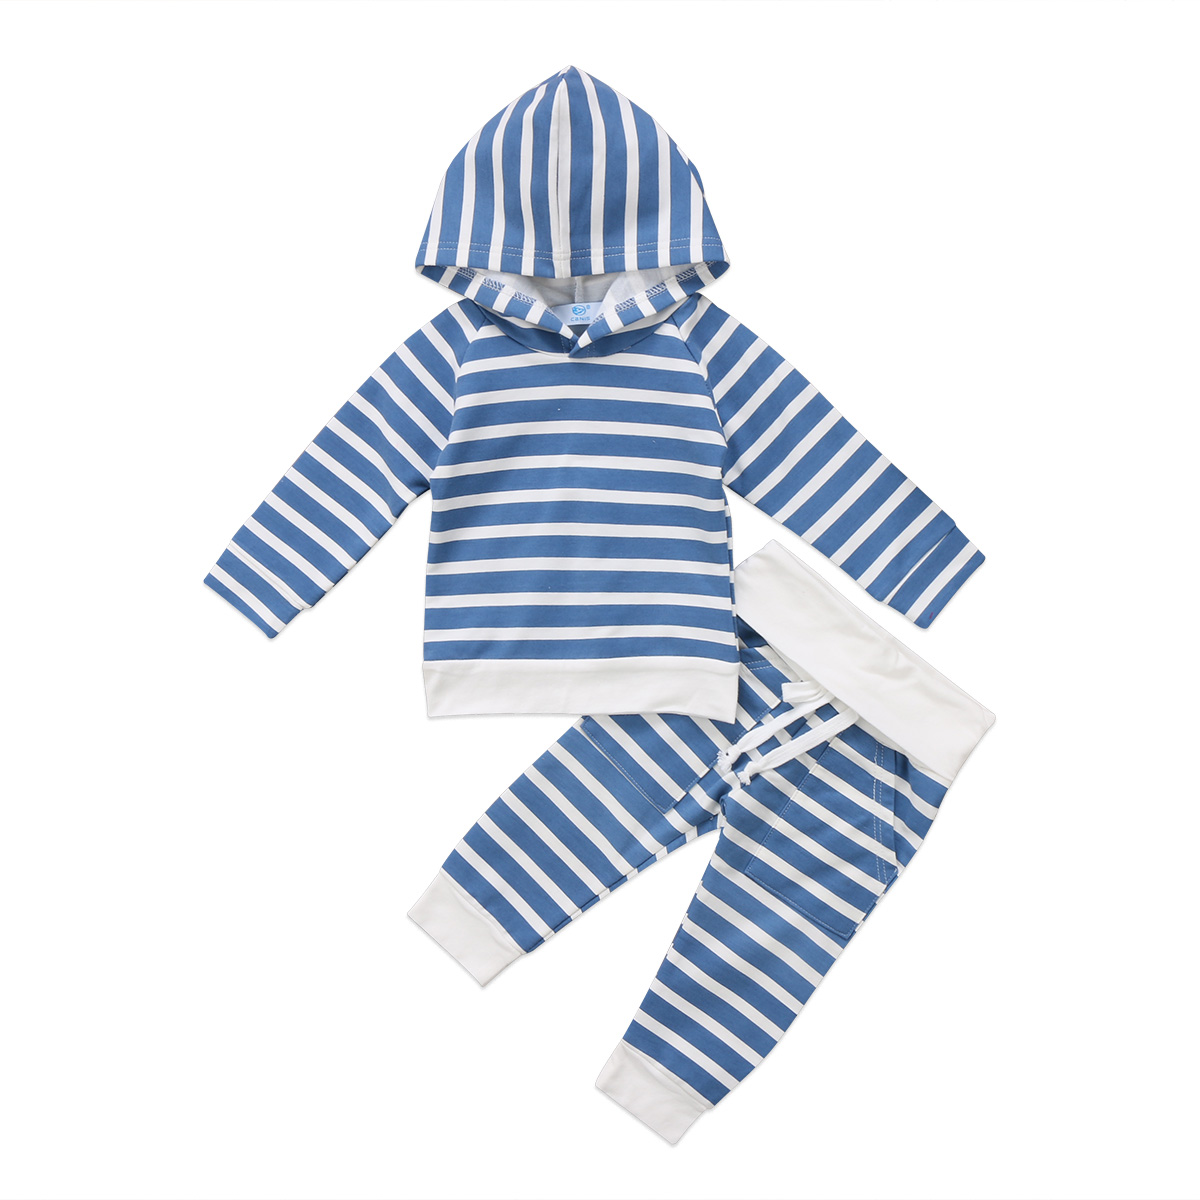 Infant Newborn Baby Boys Girls Casual Clothes Set Striped Long Sleeves Hooded Top+Long P ...